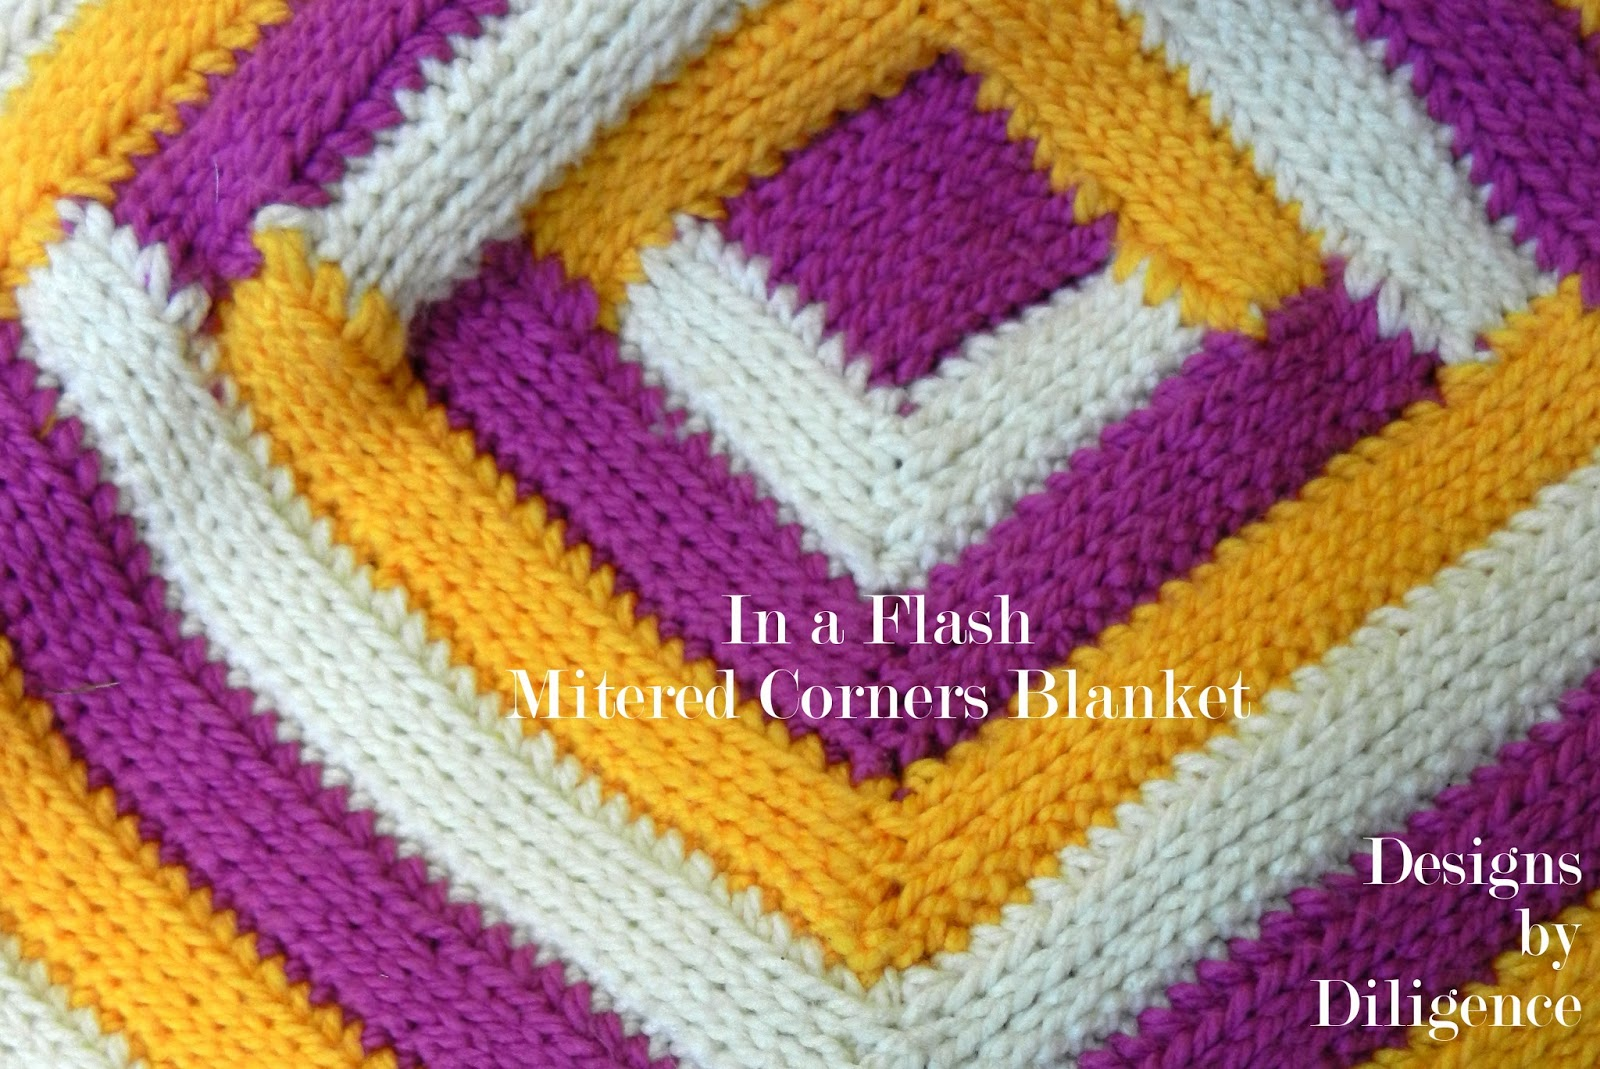 Designs by Diligence: In a Flash Mitered Corners Blanket